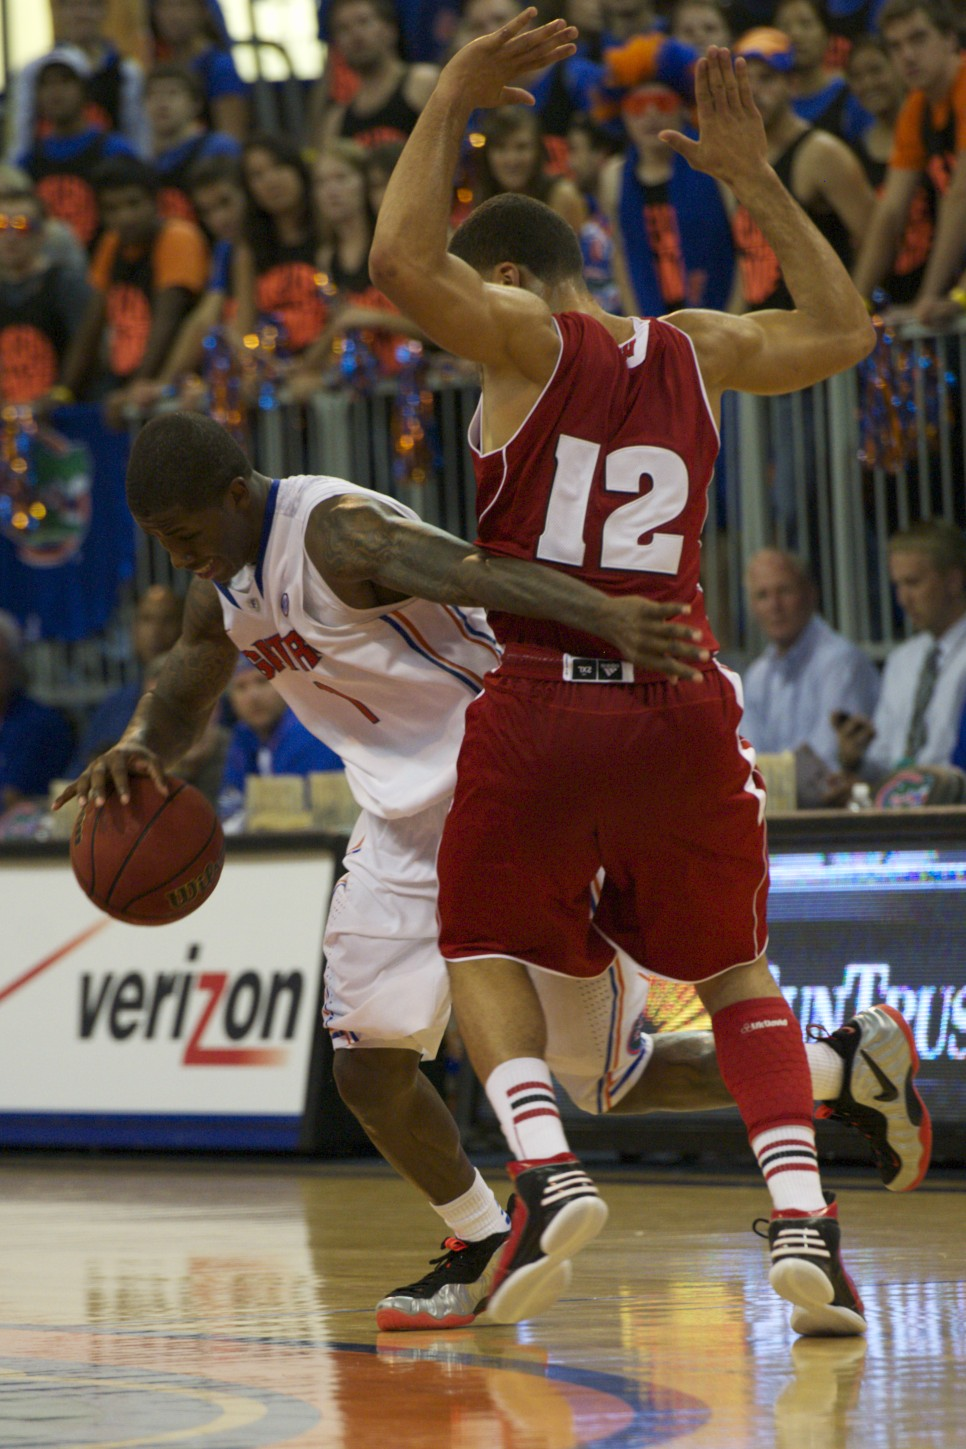 Kenny Boynton (1) passes Wisconsin defender to make a play for the Florida Gators Wednesday night.